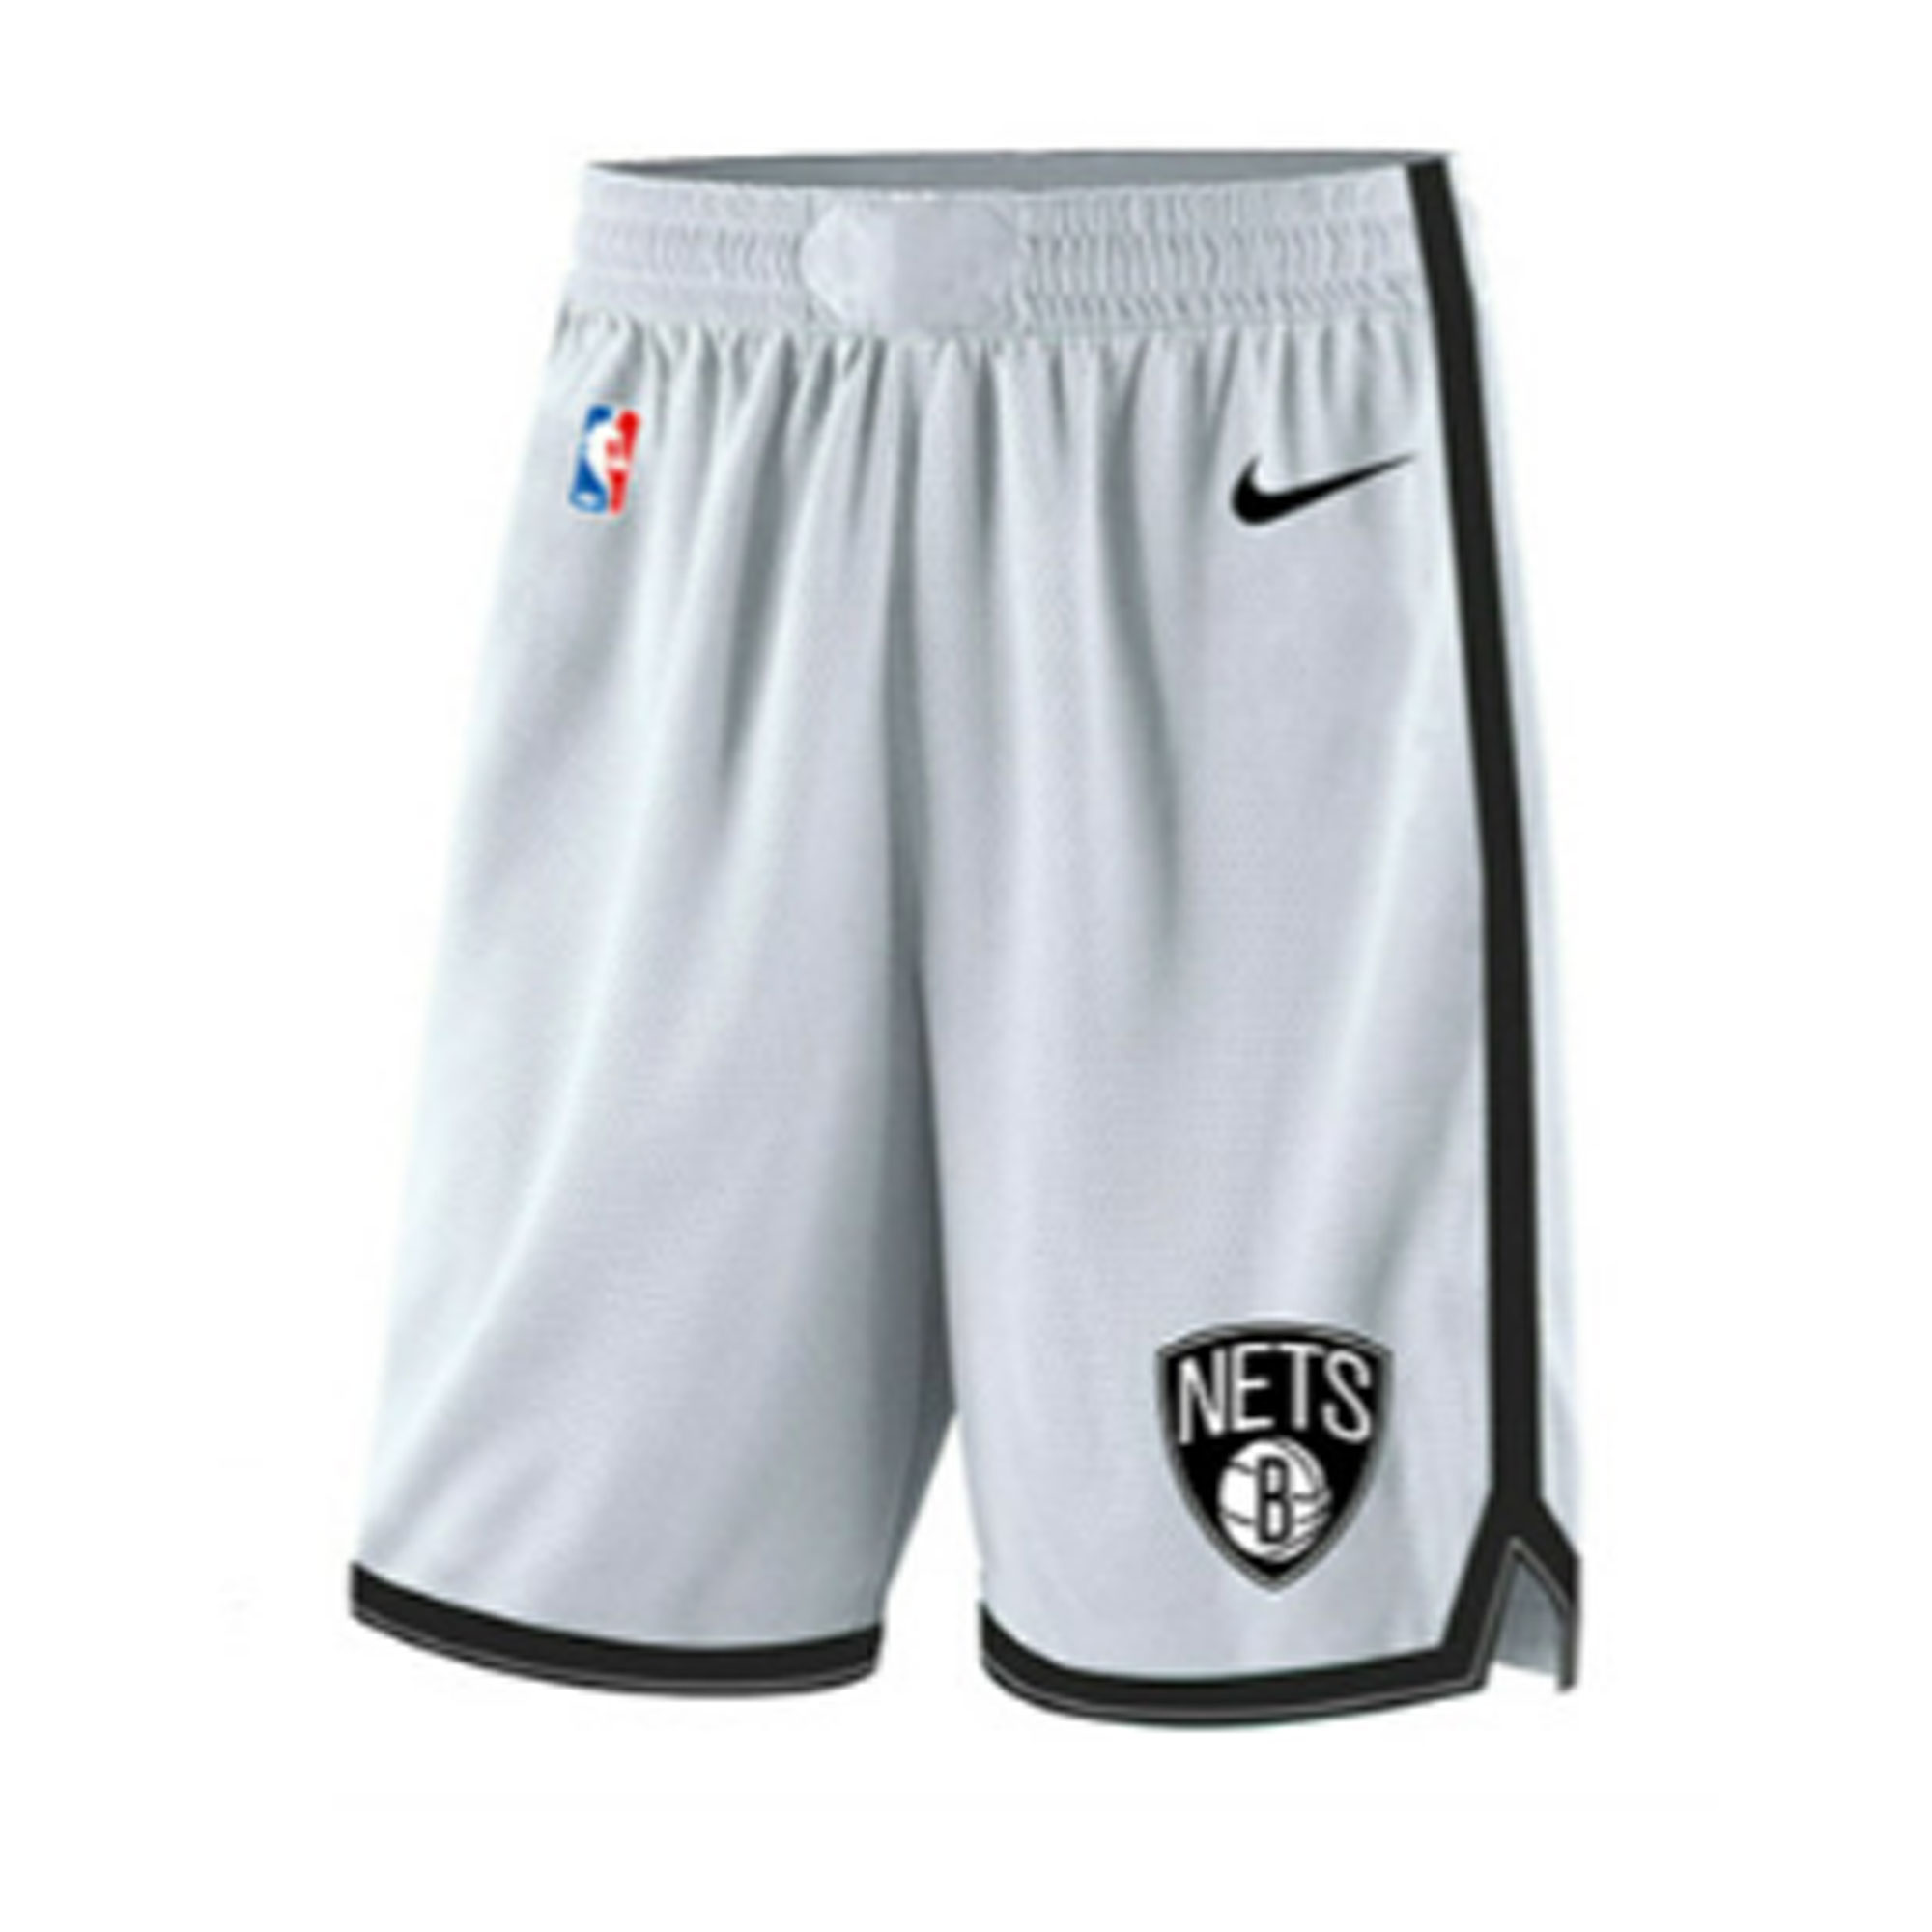 Brooklyn Nets Short (SRT-WHT-NETS)